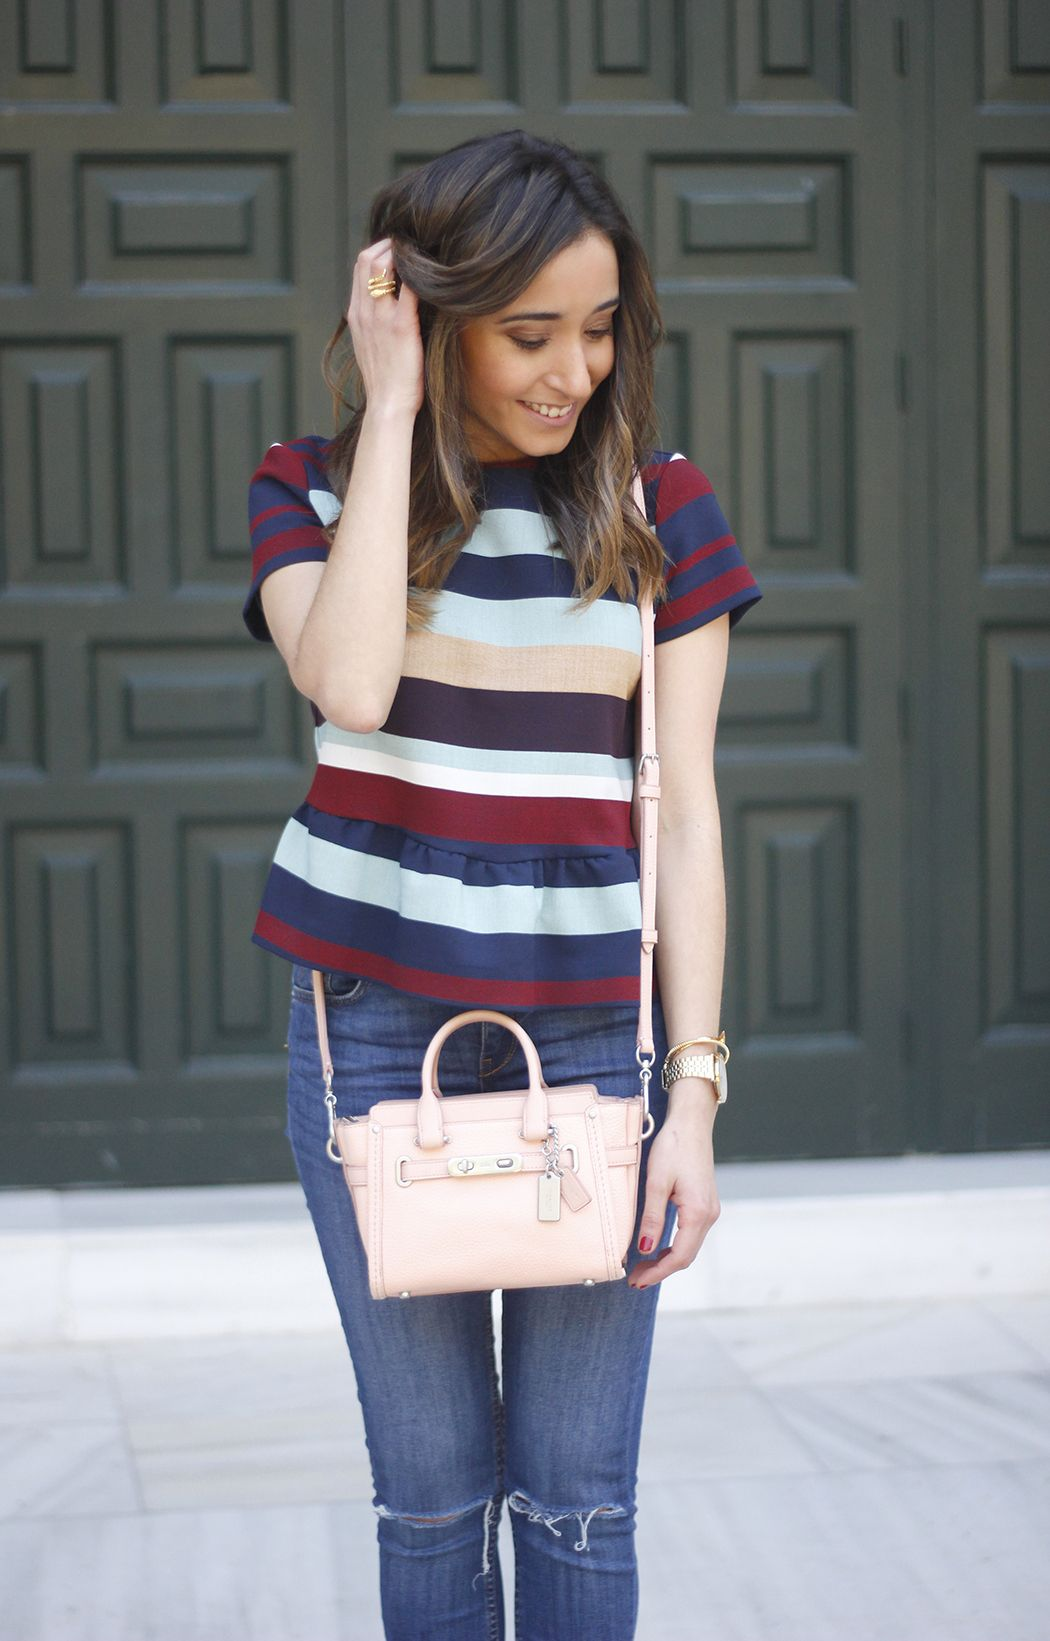 Striped Shirt | BeSugarandSpice - Fashion Blog